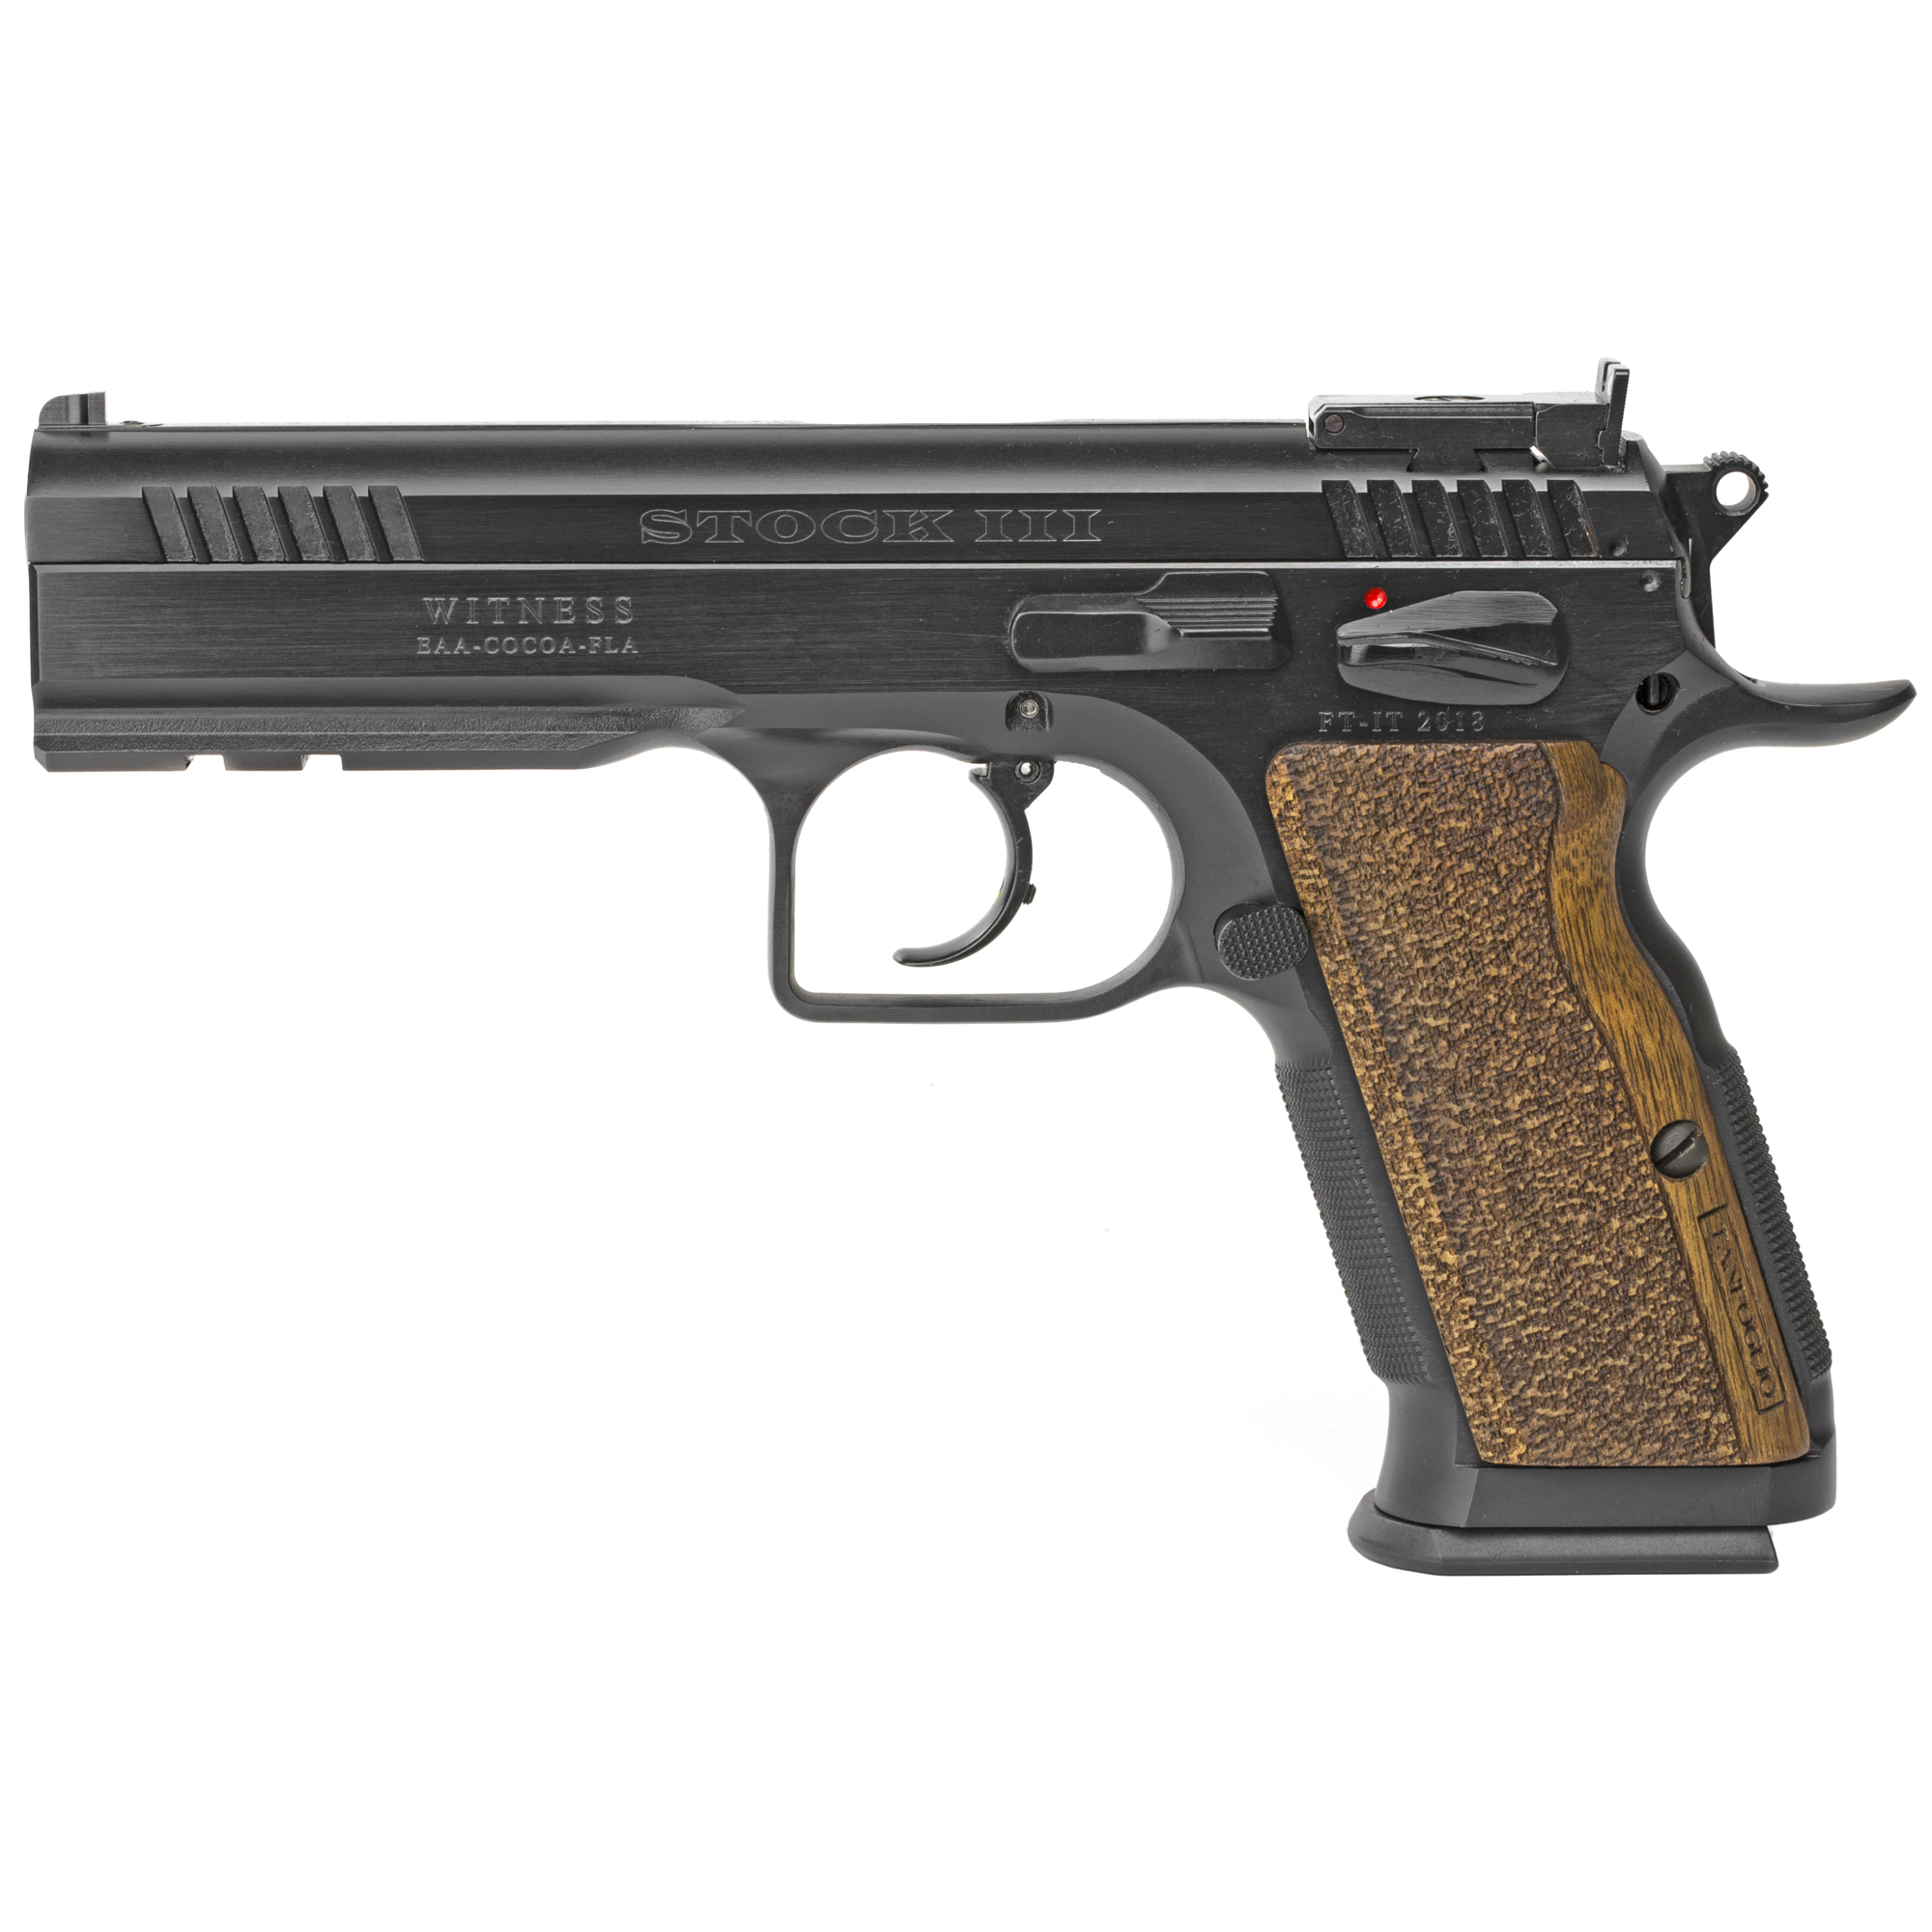 "Tanfoglio's Witness Elite pistols have won most major competition pistol matches all over the world. Loaded with features that normally cost extra; these guns are ready to go"" out of the box. Whether you are looking for a hunting handgun"" competitive pistol"" or a top quality defensive firearm"" the Witness Elite Series by Tanfoglio has what you need."